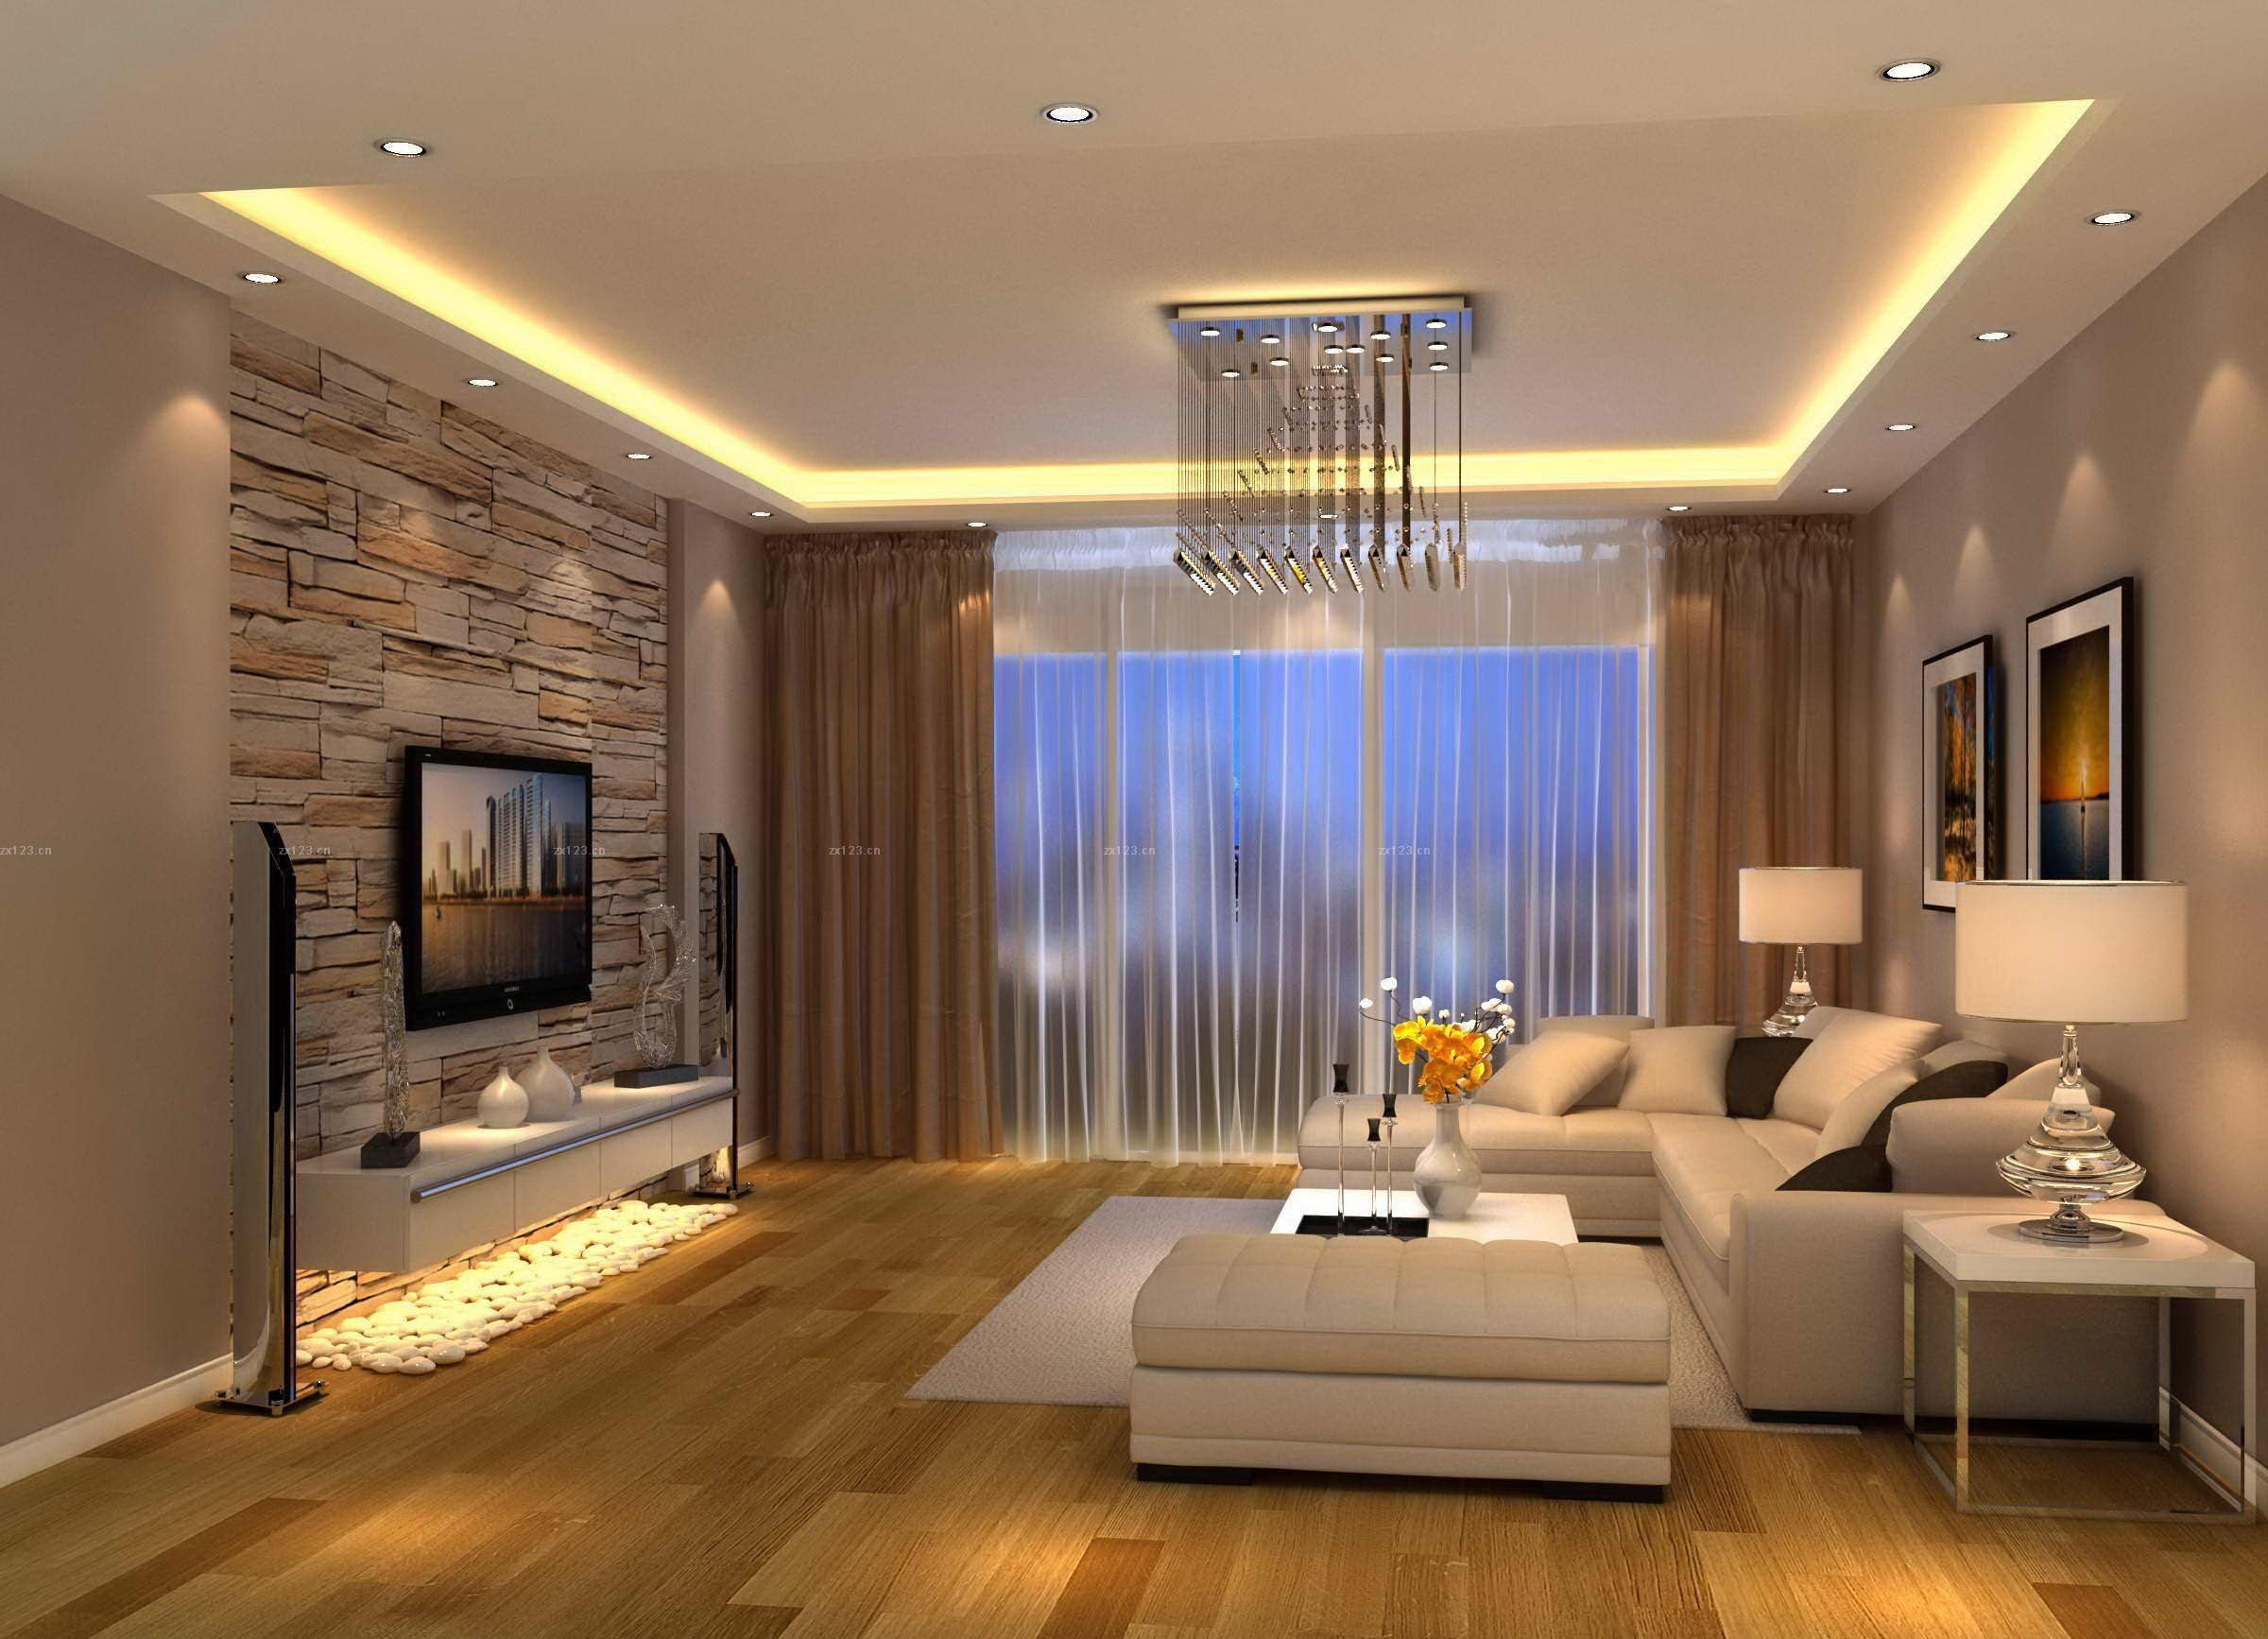 10+ Most Popular Pictures Of Living Room Design